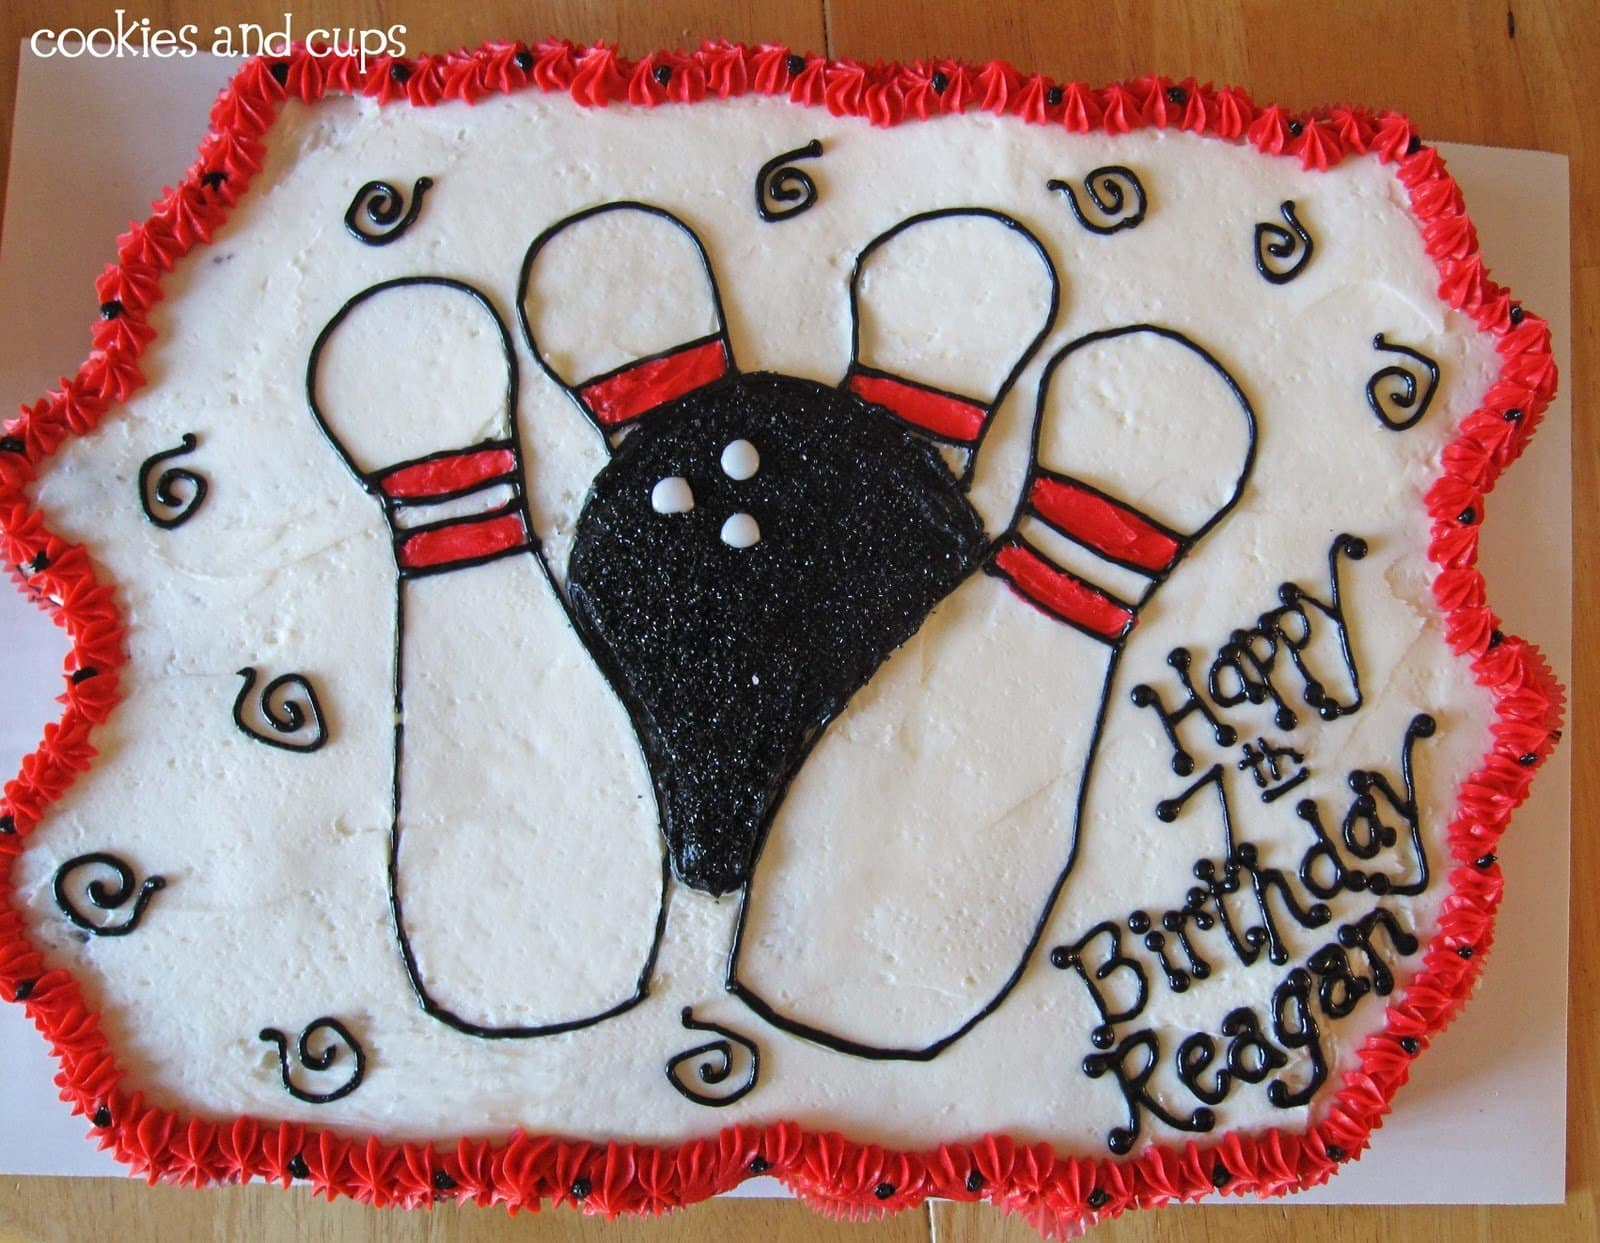 Top view of a cake decorated with bowling pins and a bowling ball